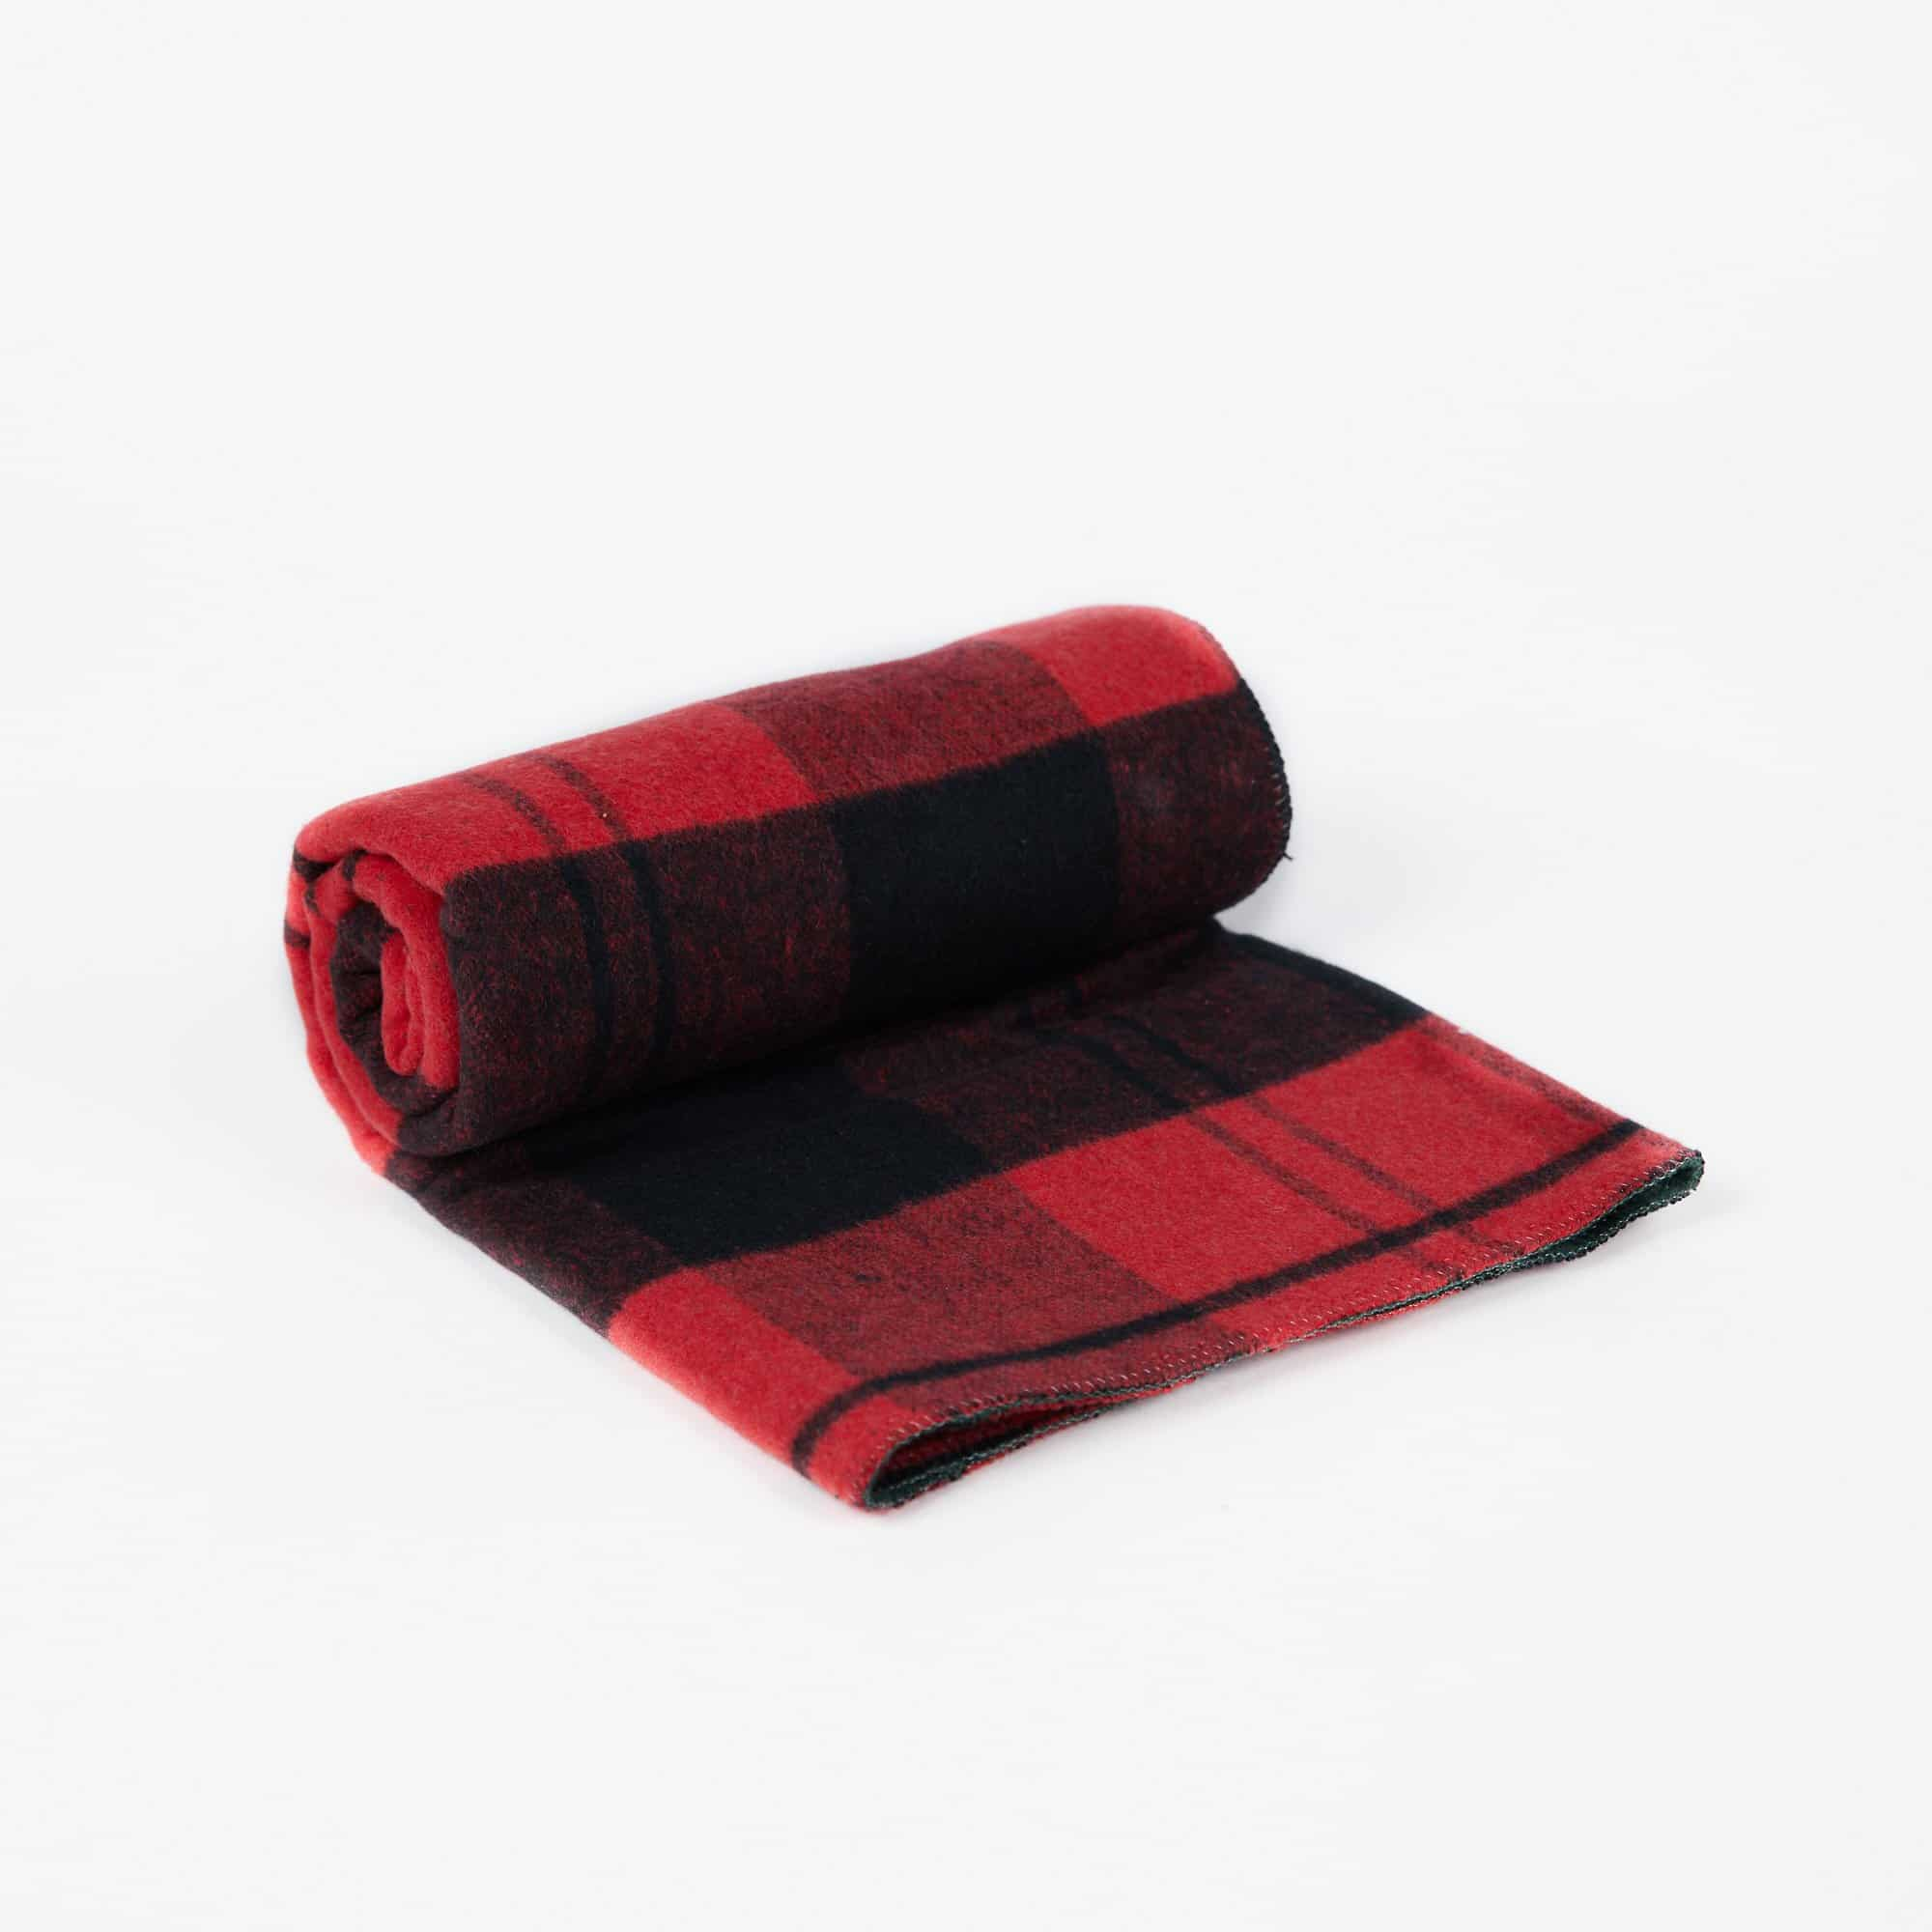 Rusty Snuggly Pet Blanket – Squares